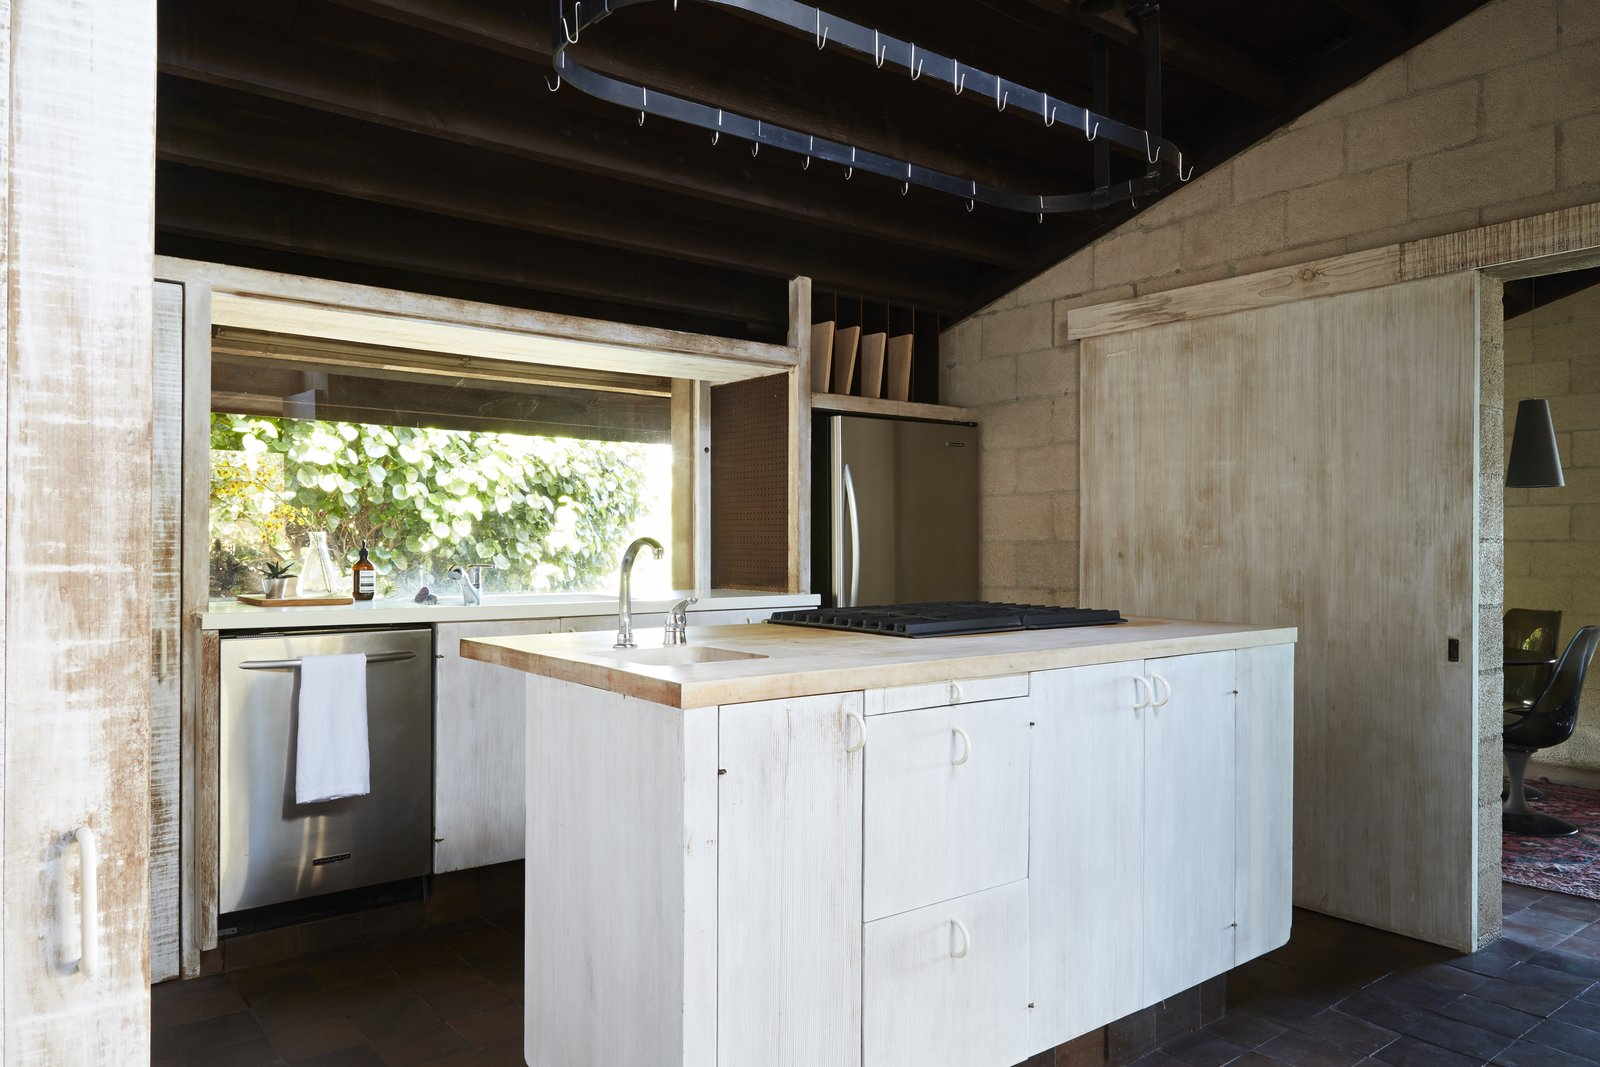 Kitchen, Dishwasher, White Cabinet, Ceramic Tile Floor, Wood Cabinet, Wood Counter, Range, Refrigerator, and Drop In Sink In the kitchen, rough-cut wood was treated to give it a bleached look that contrasts with the dark ceiling.  Photo 9 of 19 in A Famed Japanese Composer's Effortless Honolulu Hideout Asks $2.95M